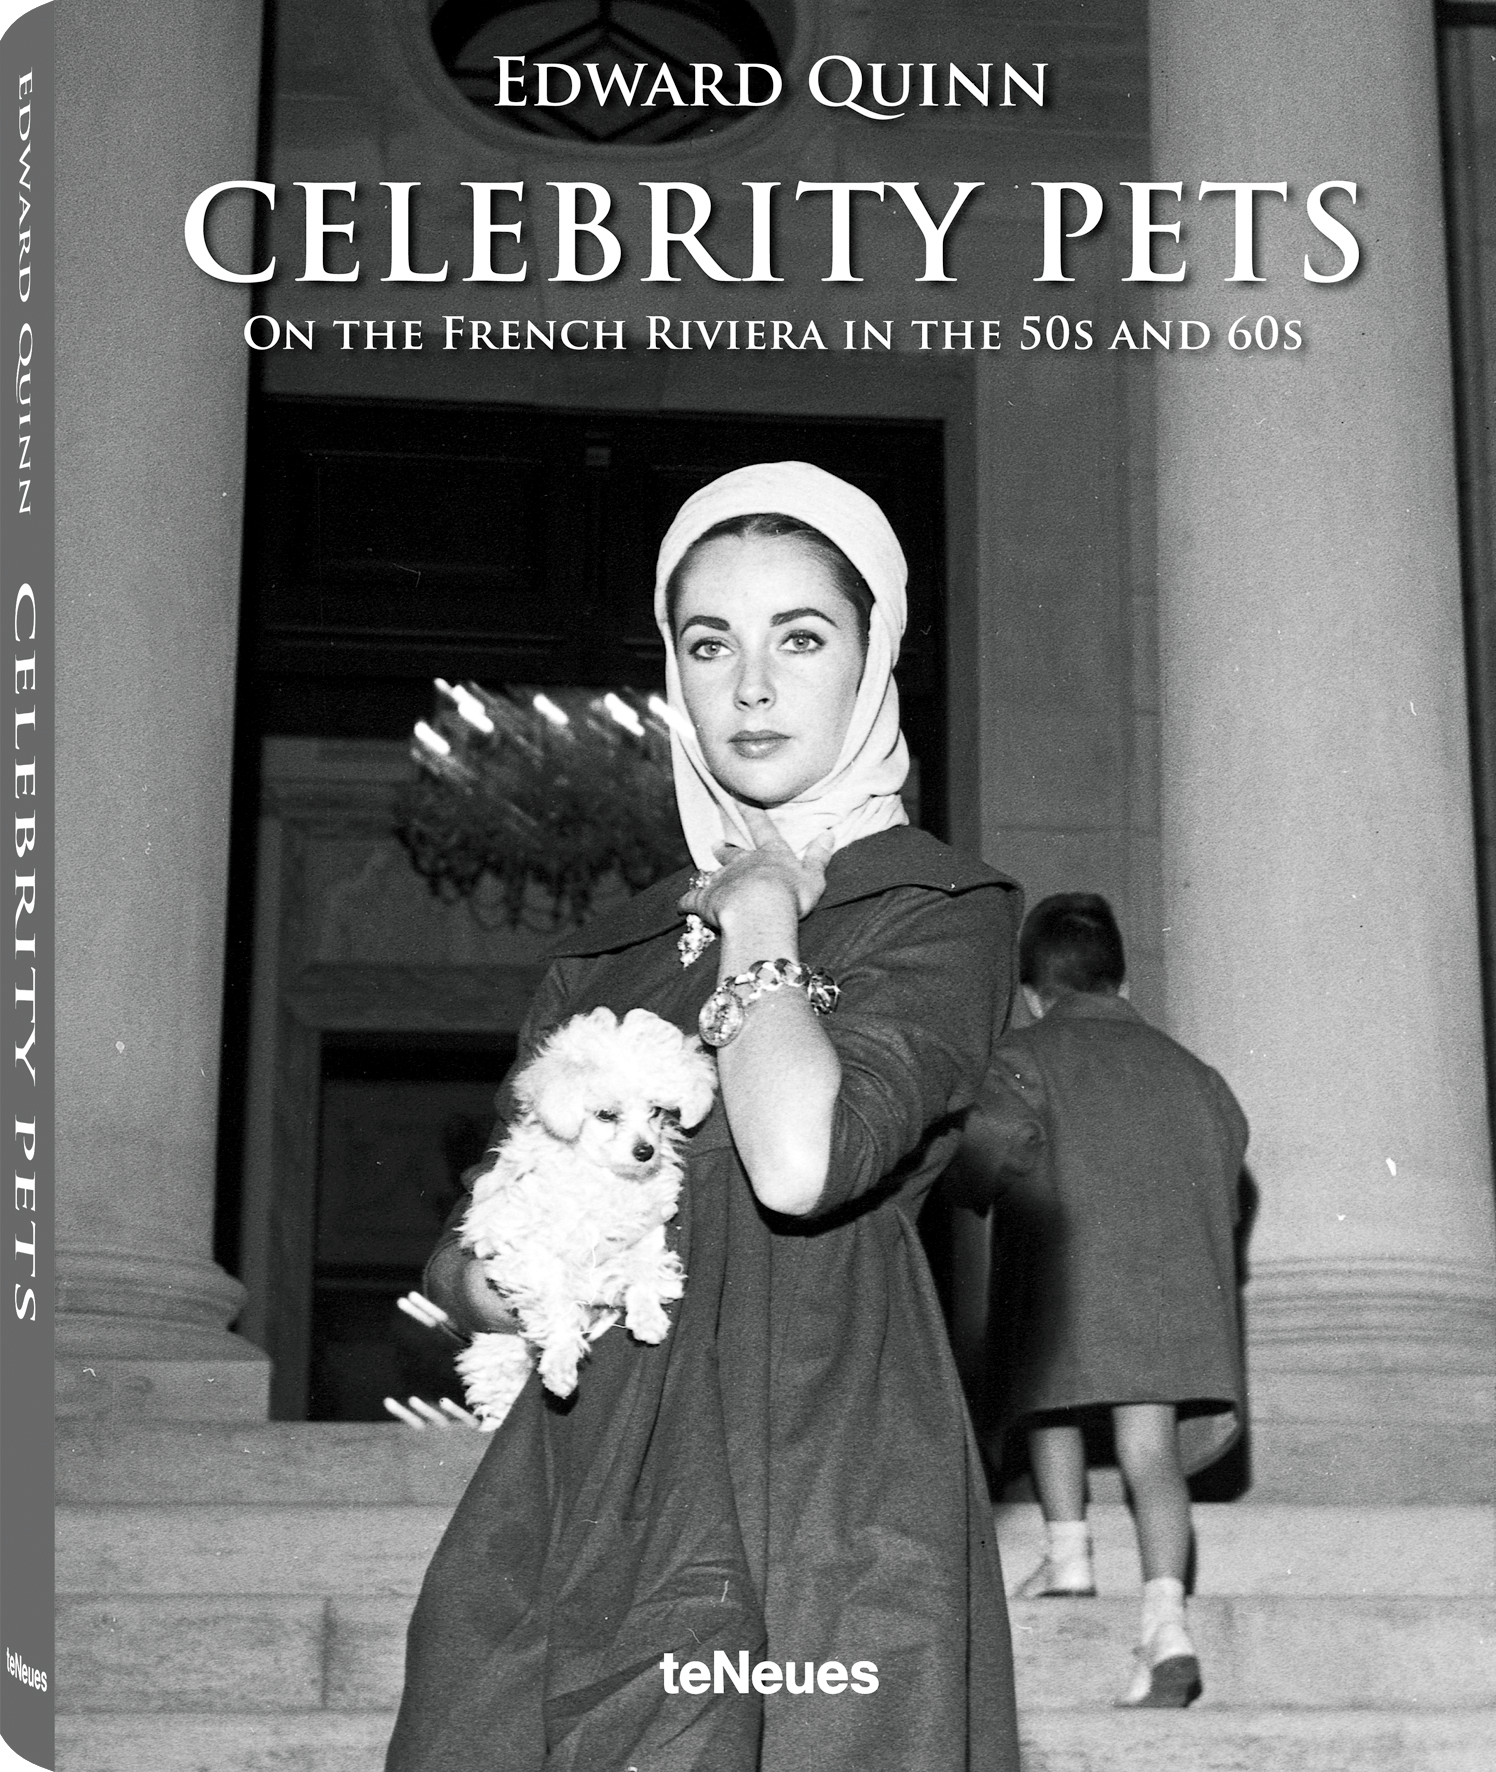 © Celebrity Pets - On the French Riviera in the 50s and 60s by Edward Quinn, to be published by teNeues in September 2014, www.teneues.com. Elizabeth Taylor stands with one of her two Miniature Poodles in front of Villa Fiorentina. Saint-Jean-Cap-Ferrat 1957, Photo © 2014 edwardquinn.com. All rights reserved.